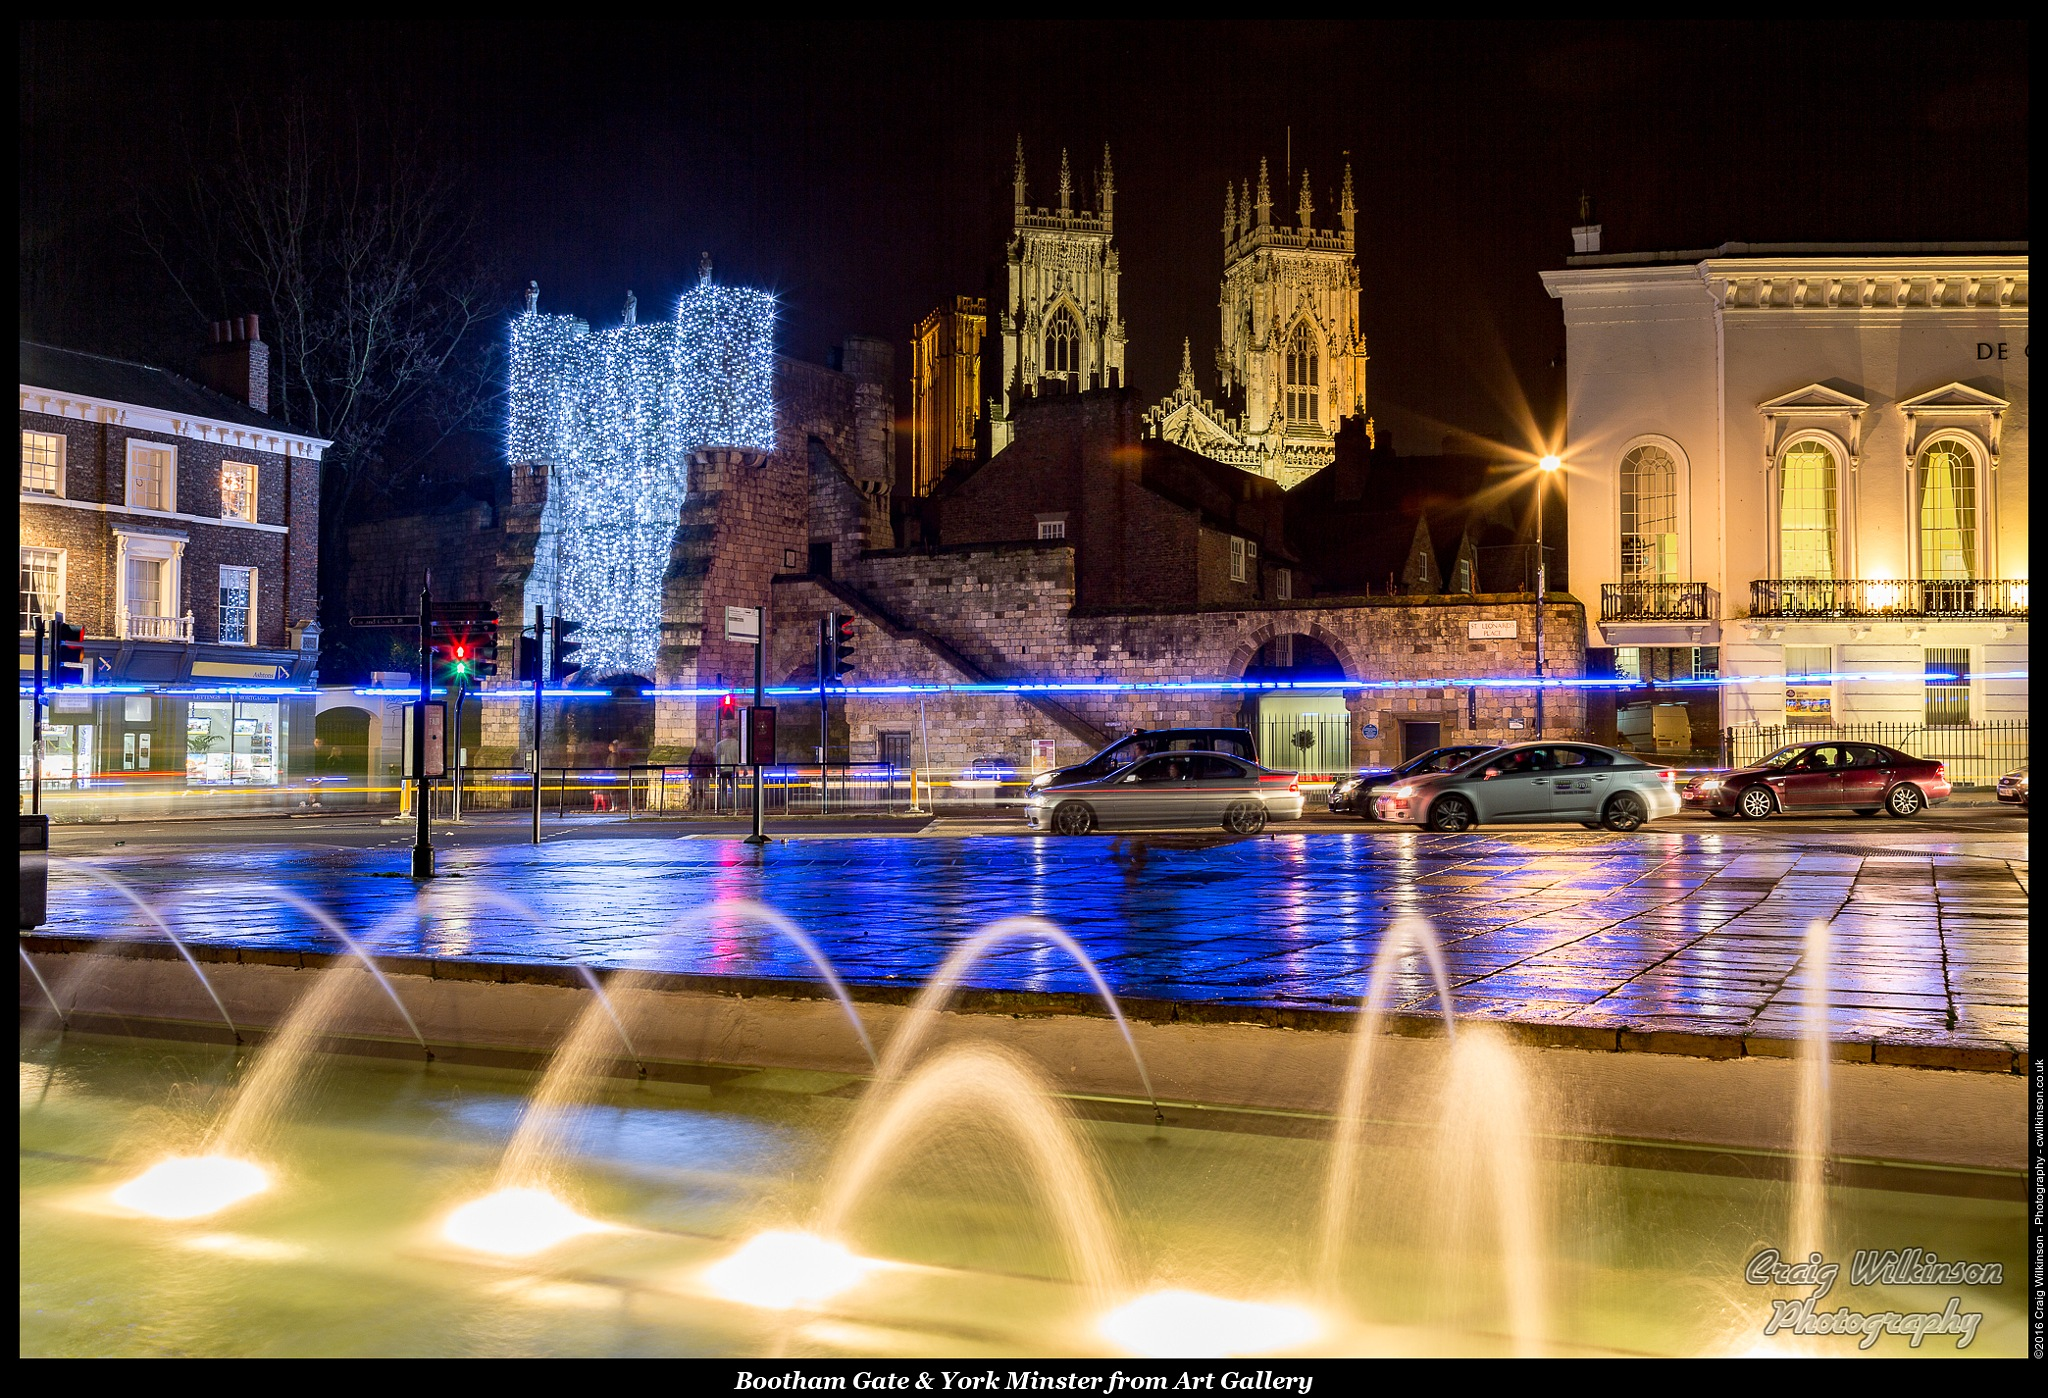 Bootham Gate & York Minster from Art Gallery by Craig Wilkinson